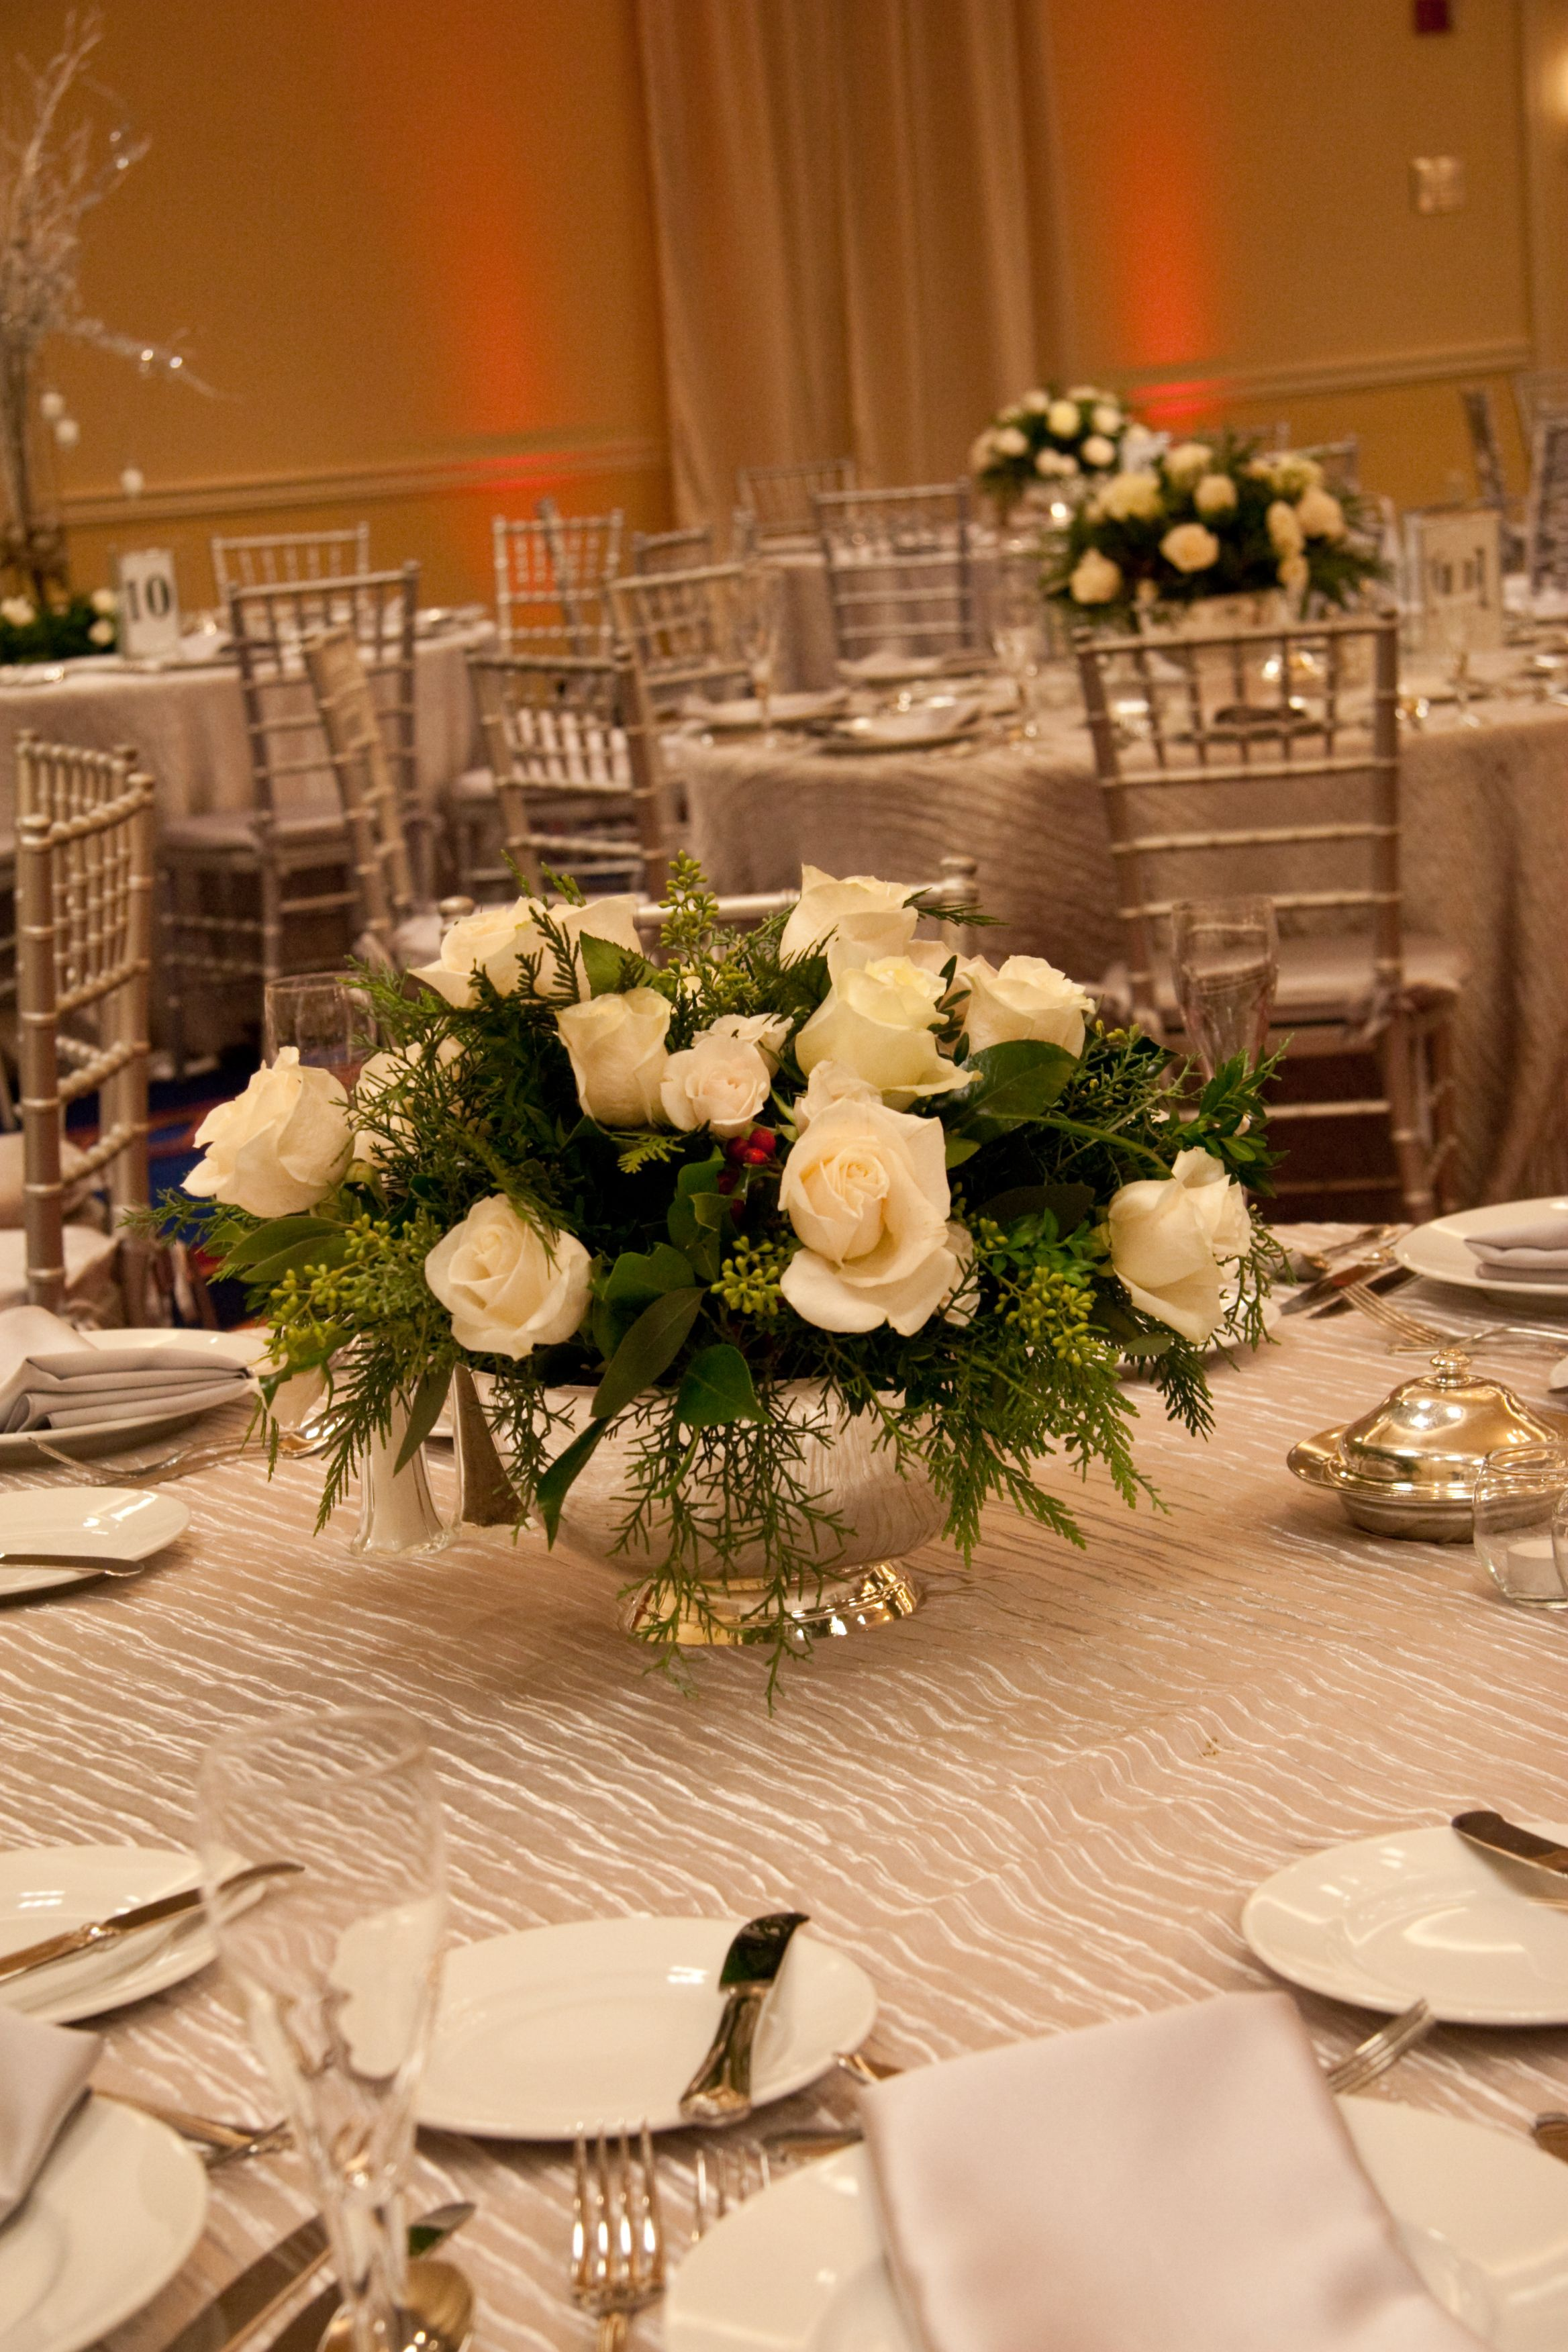 Low Winter Centerpieceswhite Roses, Winter Greens, Pine Cones In Silver